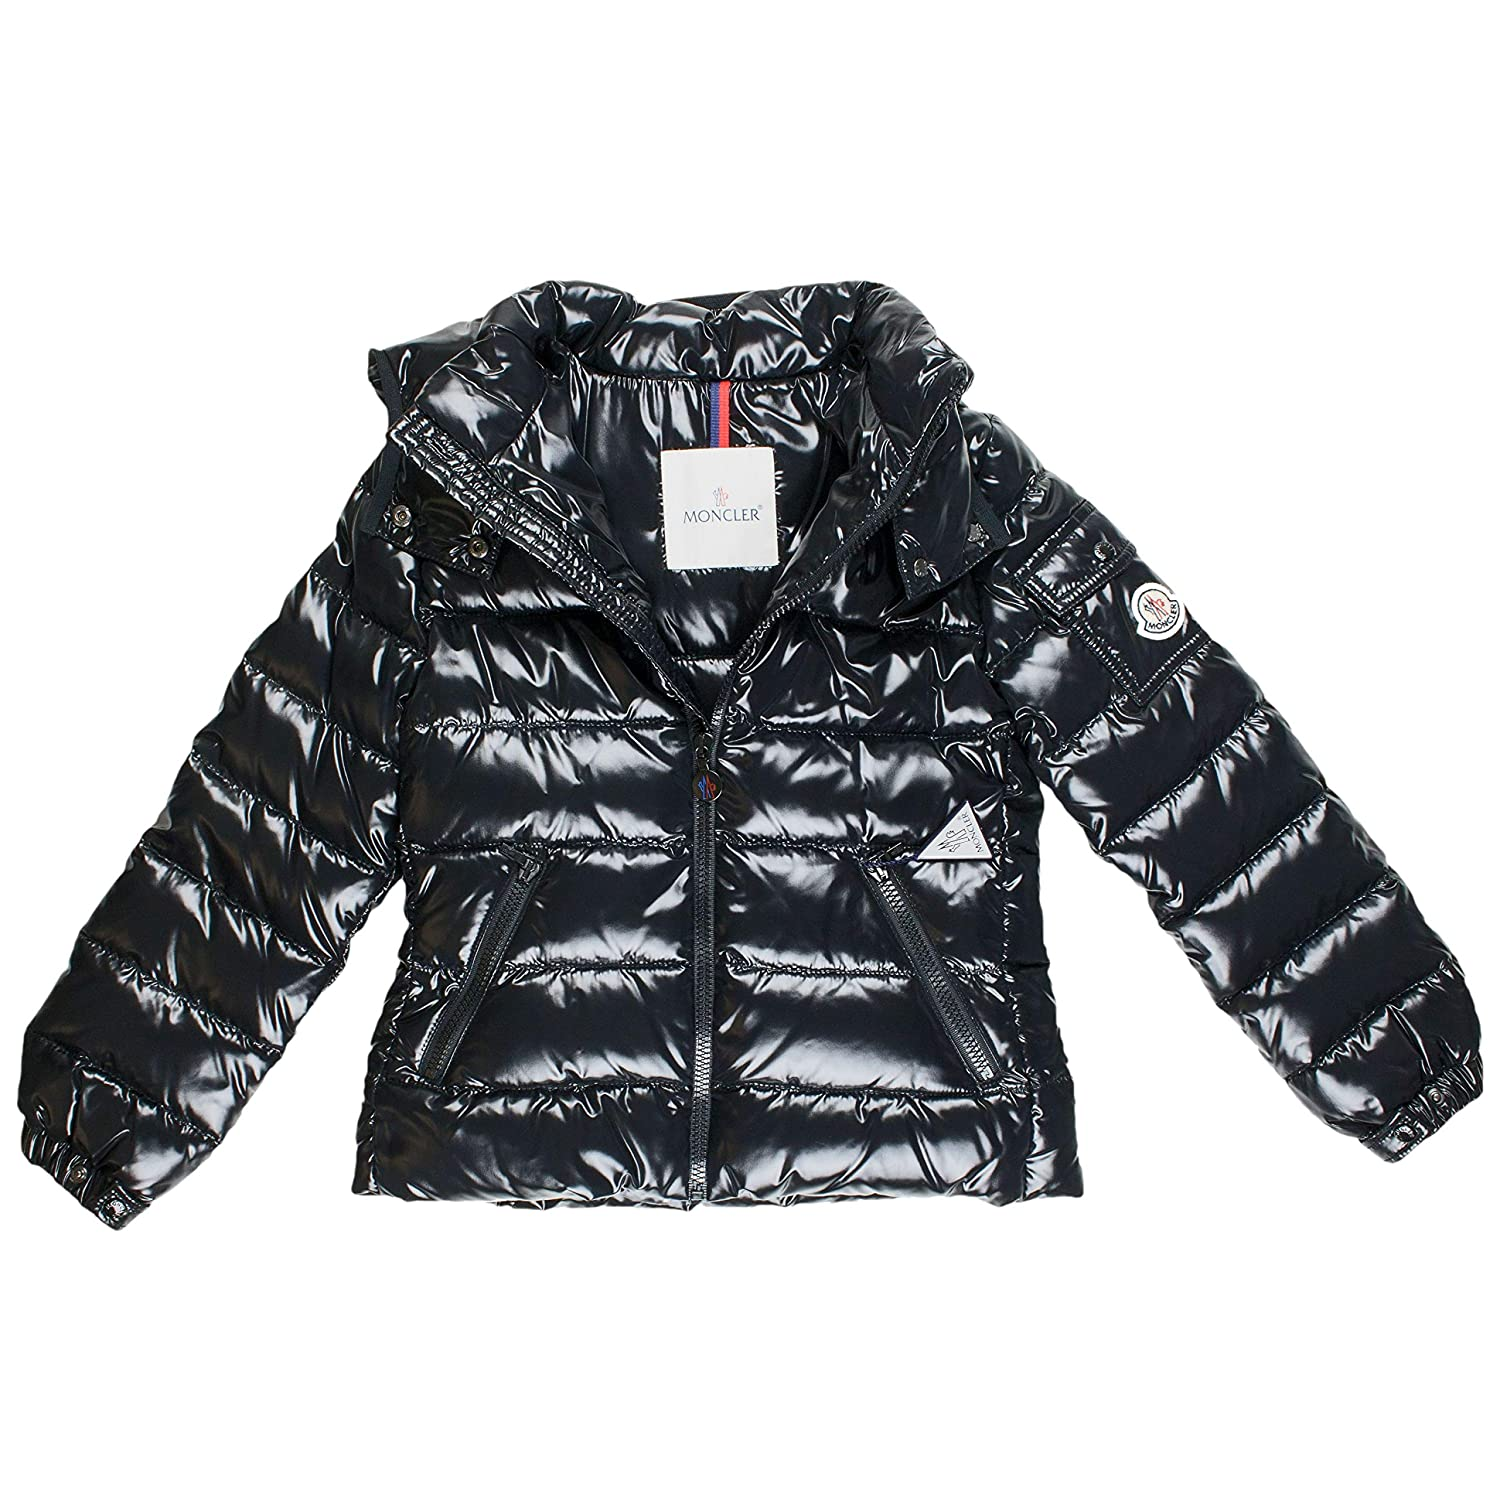 d7aed8aa06ad Moncler Bady Down Jacket Black  Amazon.co.uk  Clothing